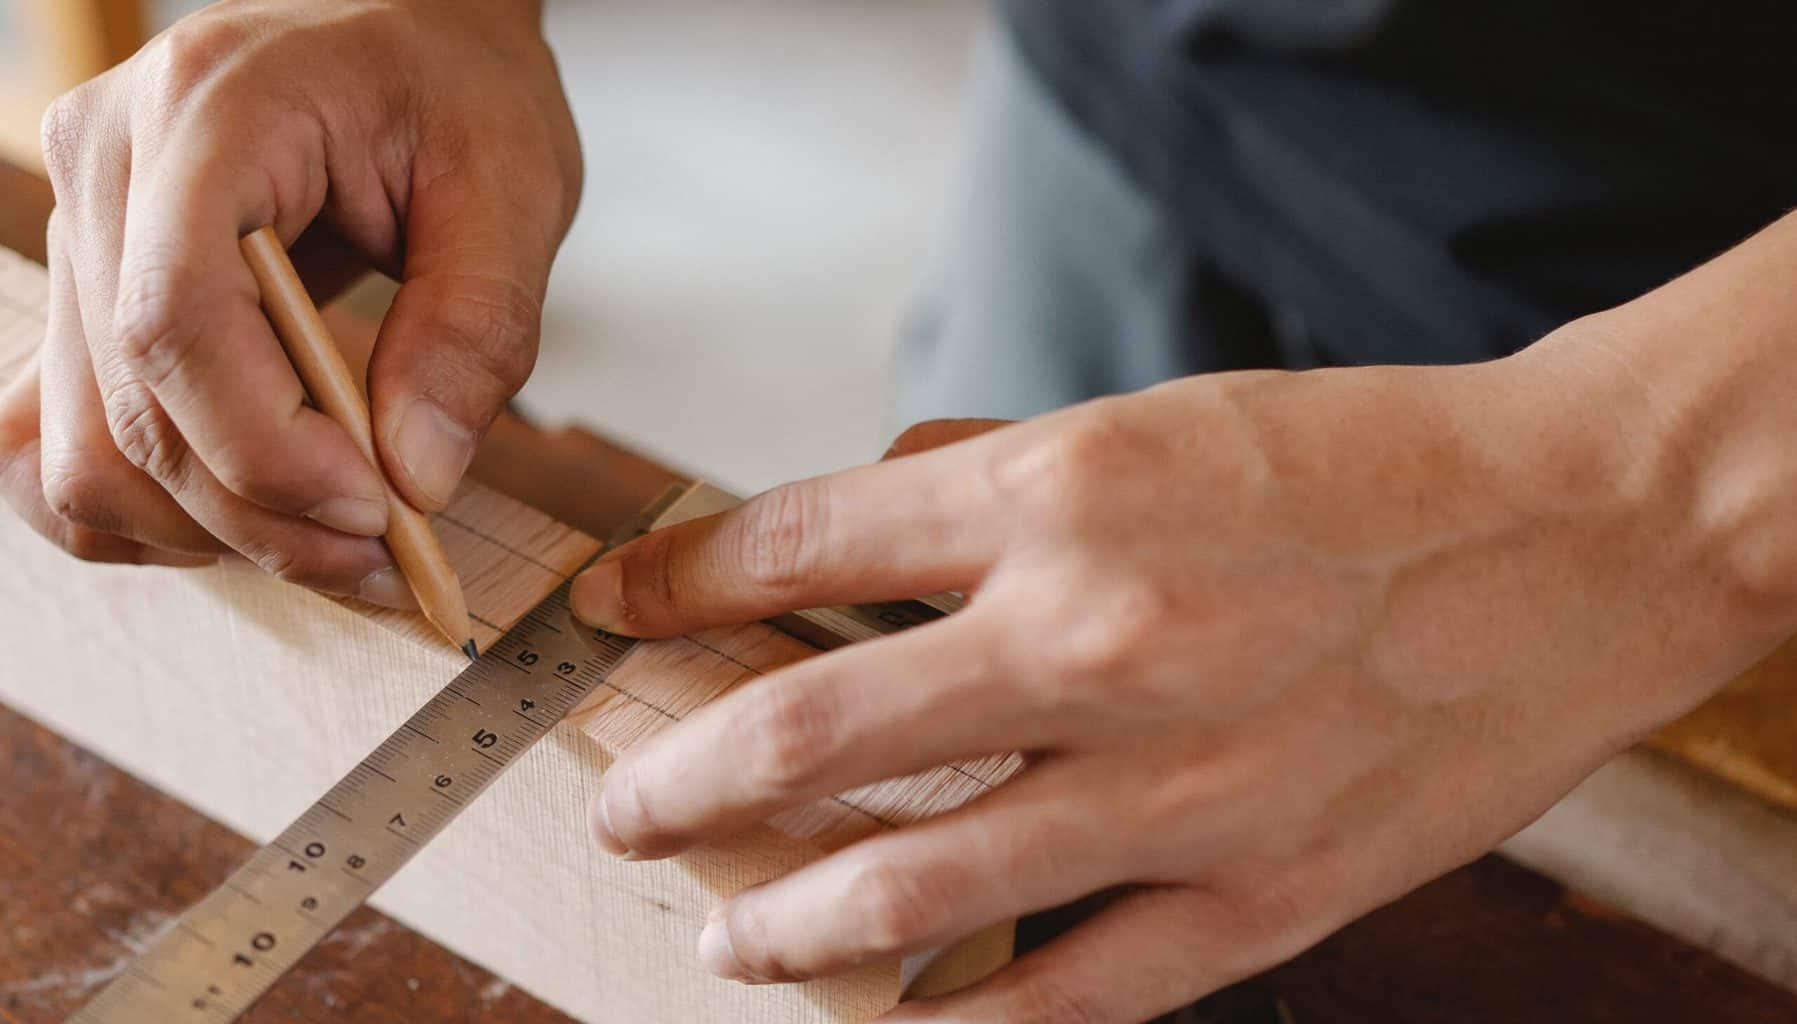 Marking the wood with measurements